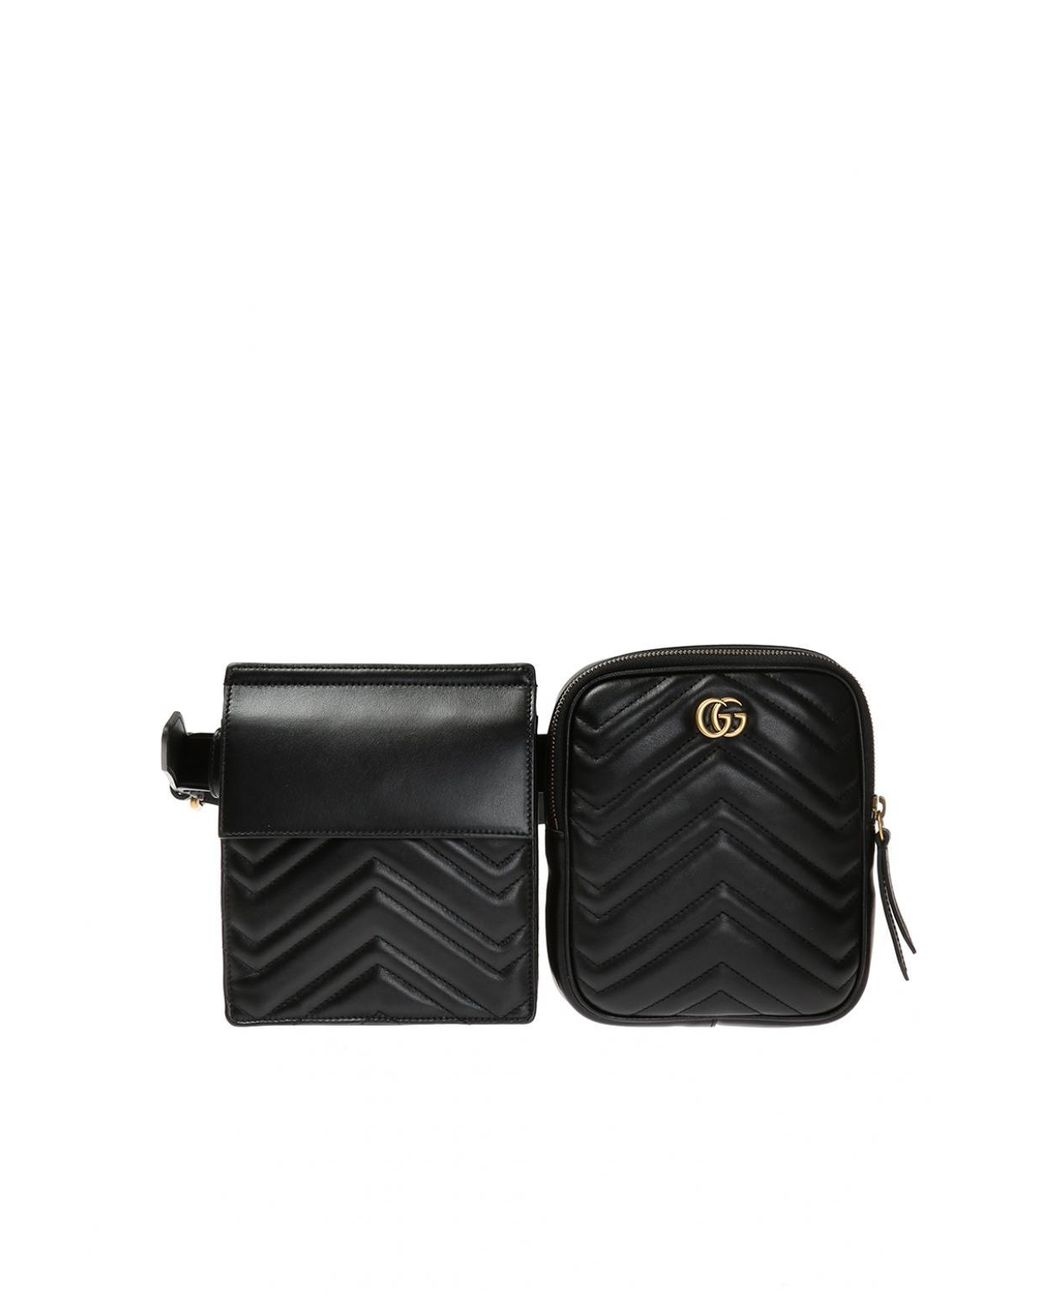 ac3a8a3174d99 Gucci Two-pouch Belt Bag in Black for Men - Lyst